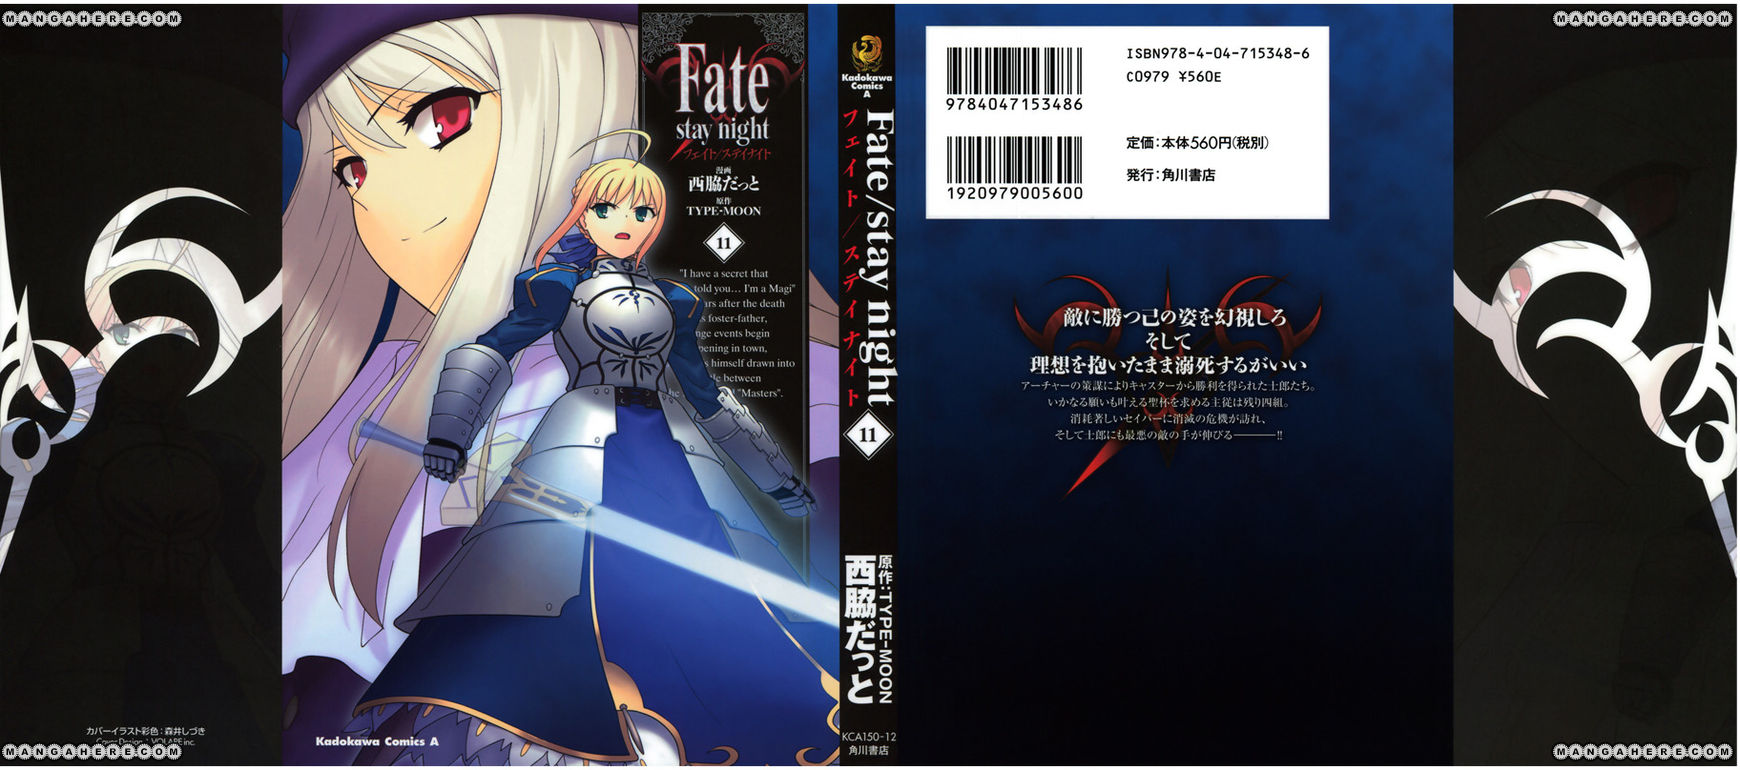 Fate/Stay Night 48 Page 1